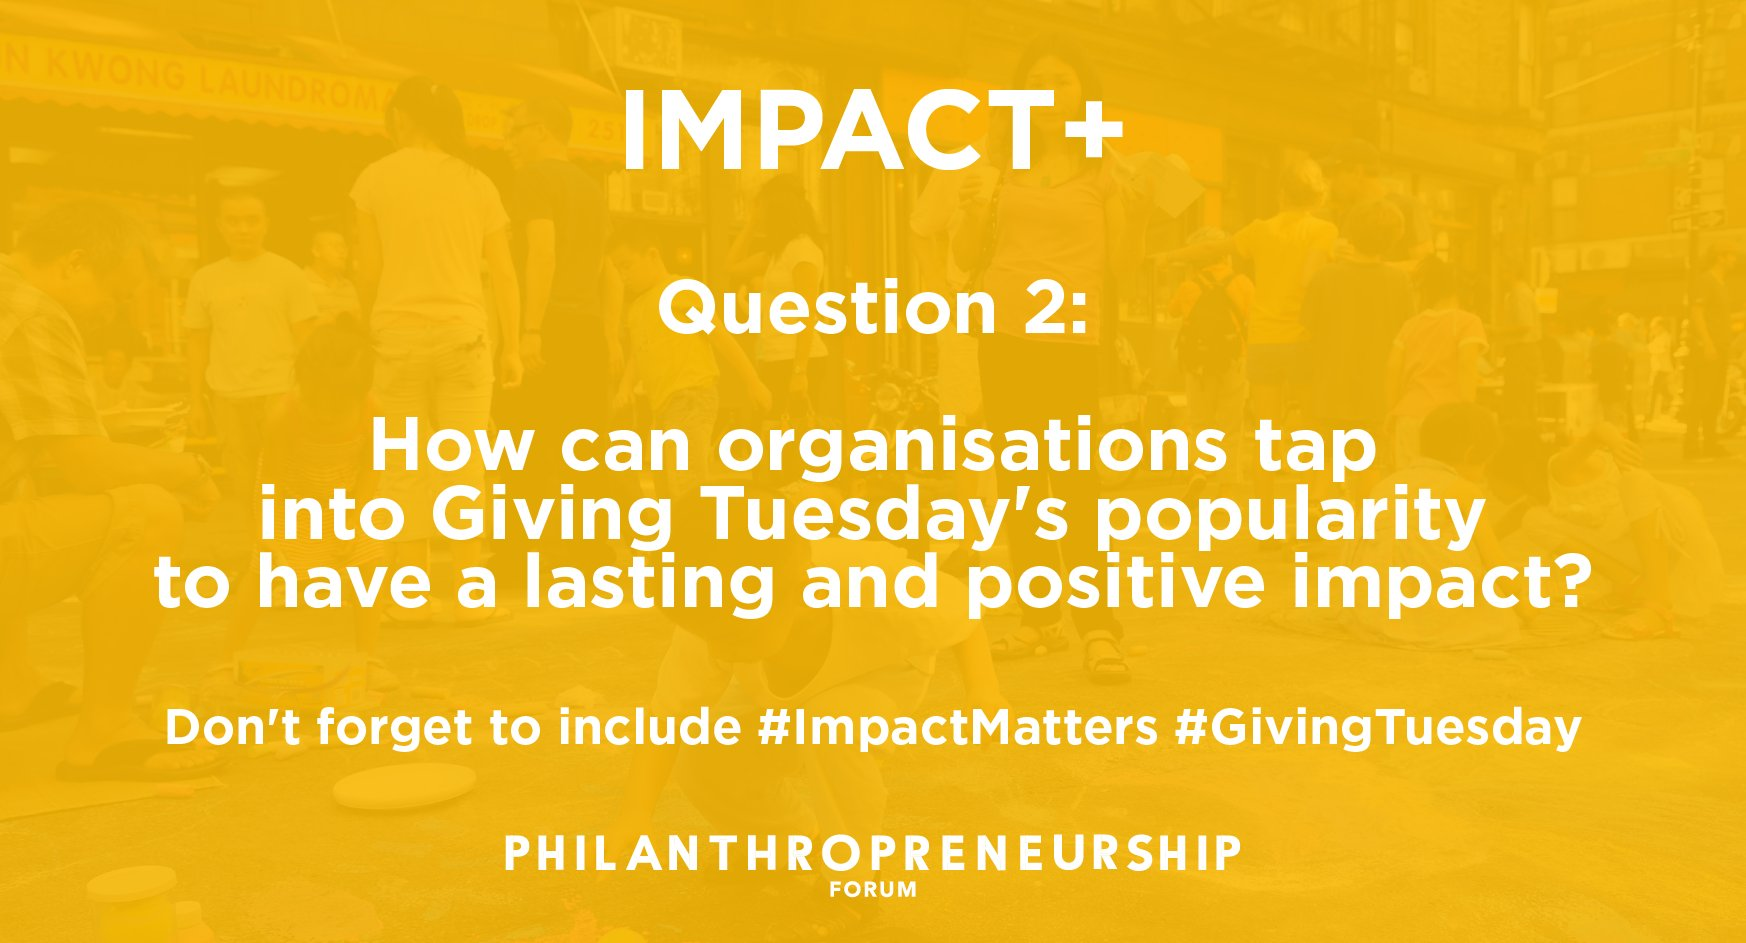 Q2: How can organisations tap into #GivingTuesday's popularity to have a lasting and positive impact? #ImpactMatters https://t.co/gP85tKu6dX